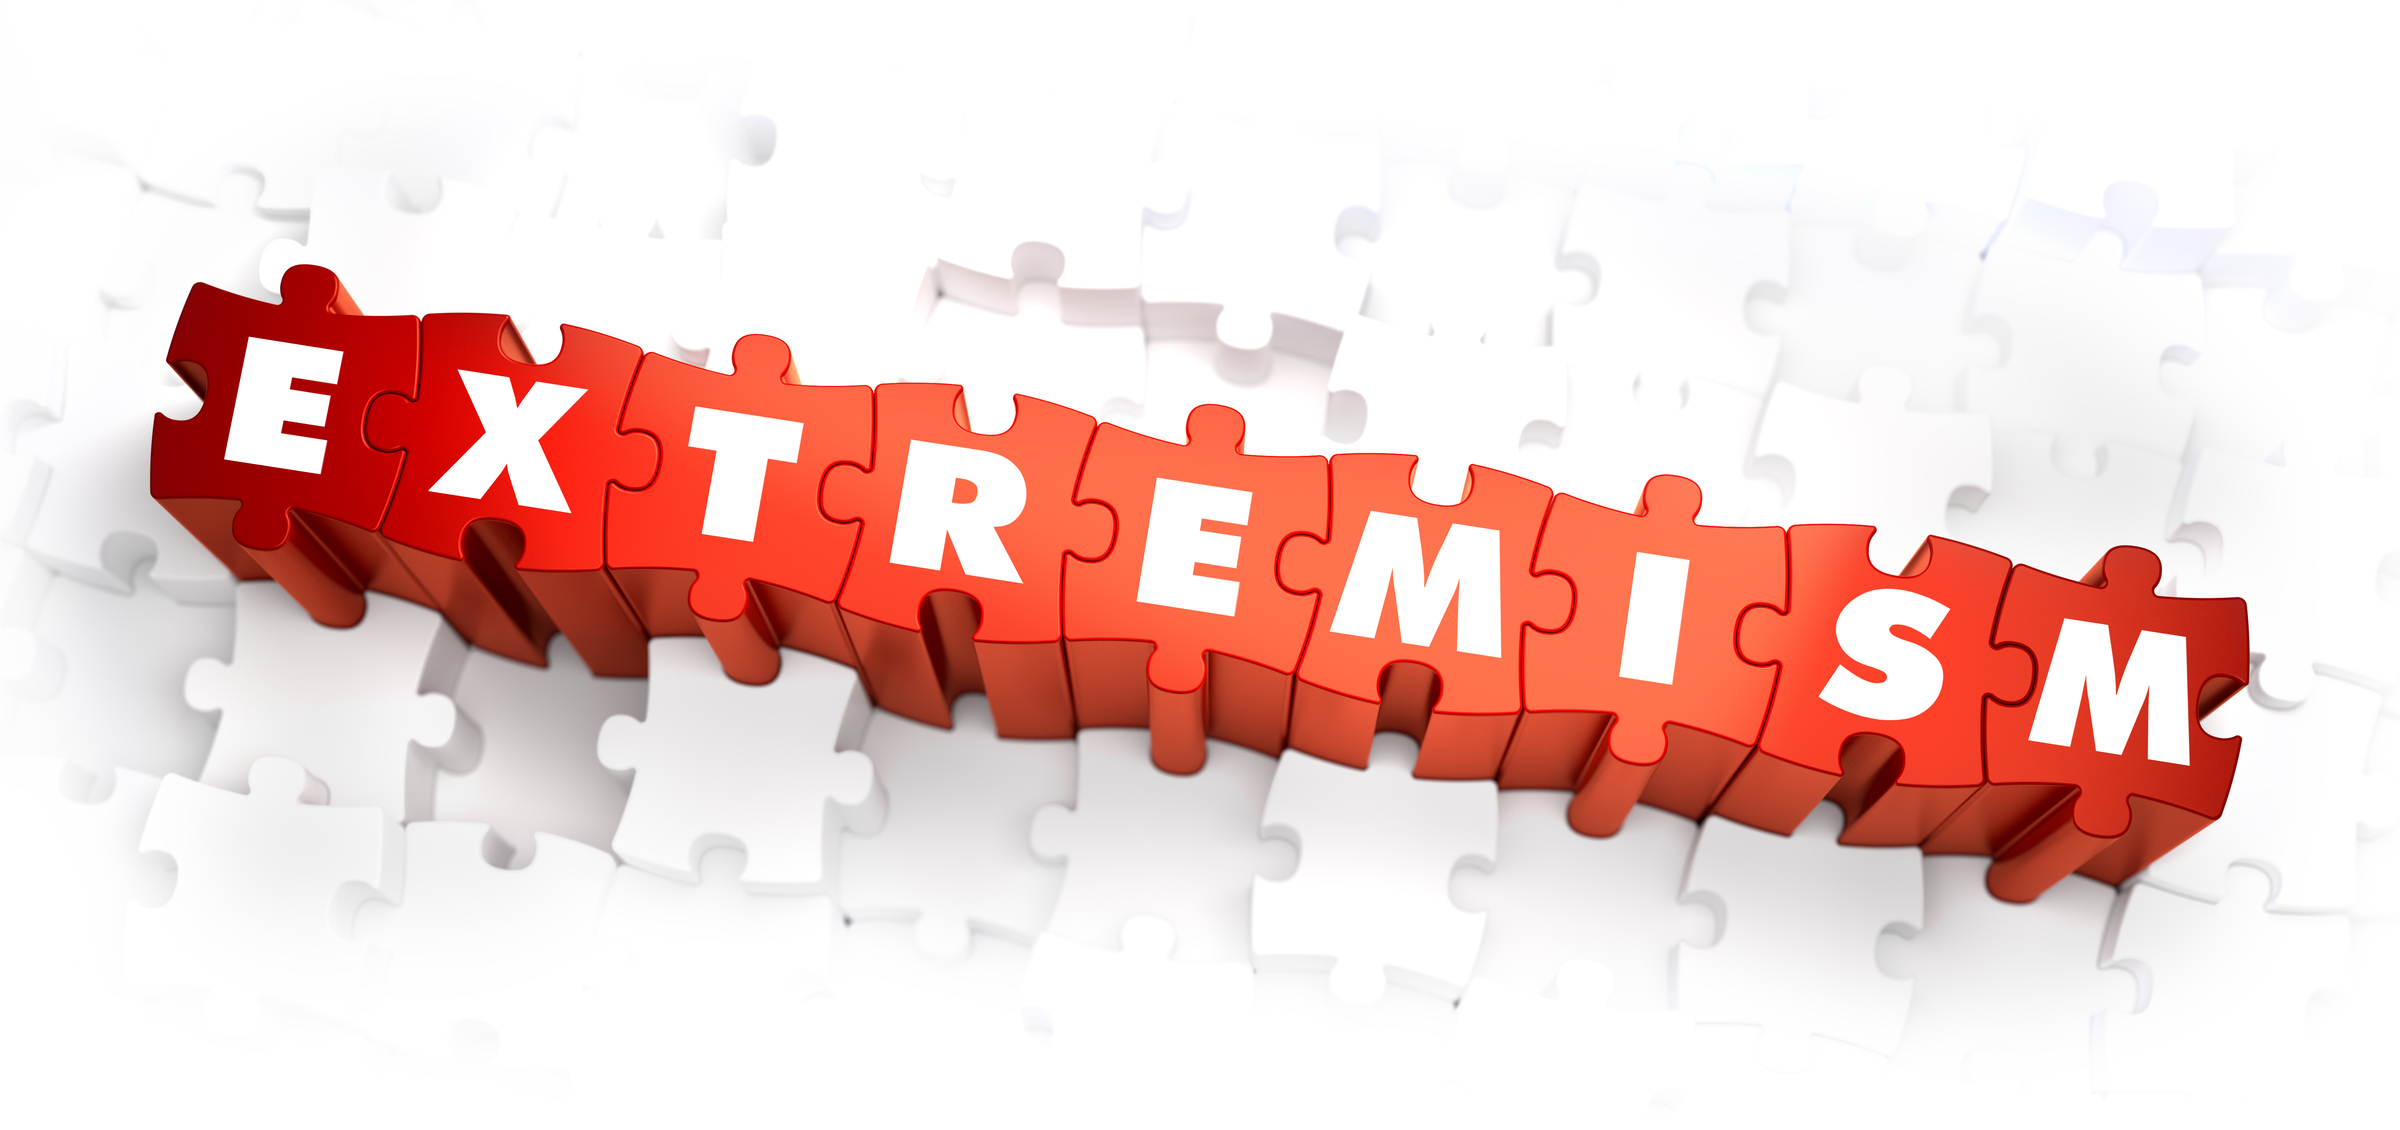 Extremism - Word on Red Puzzles.